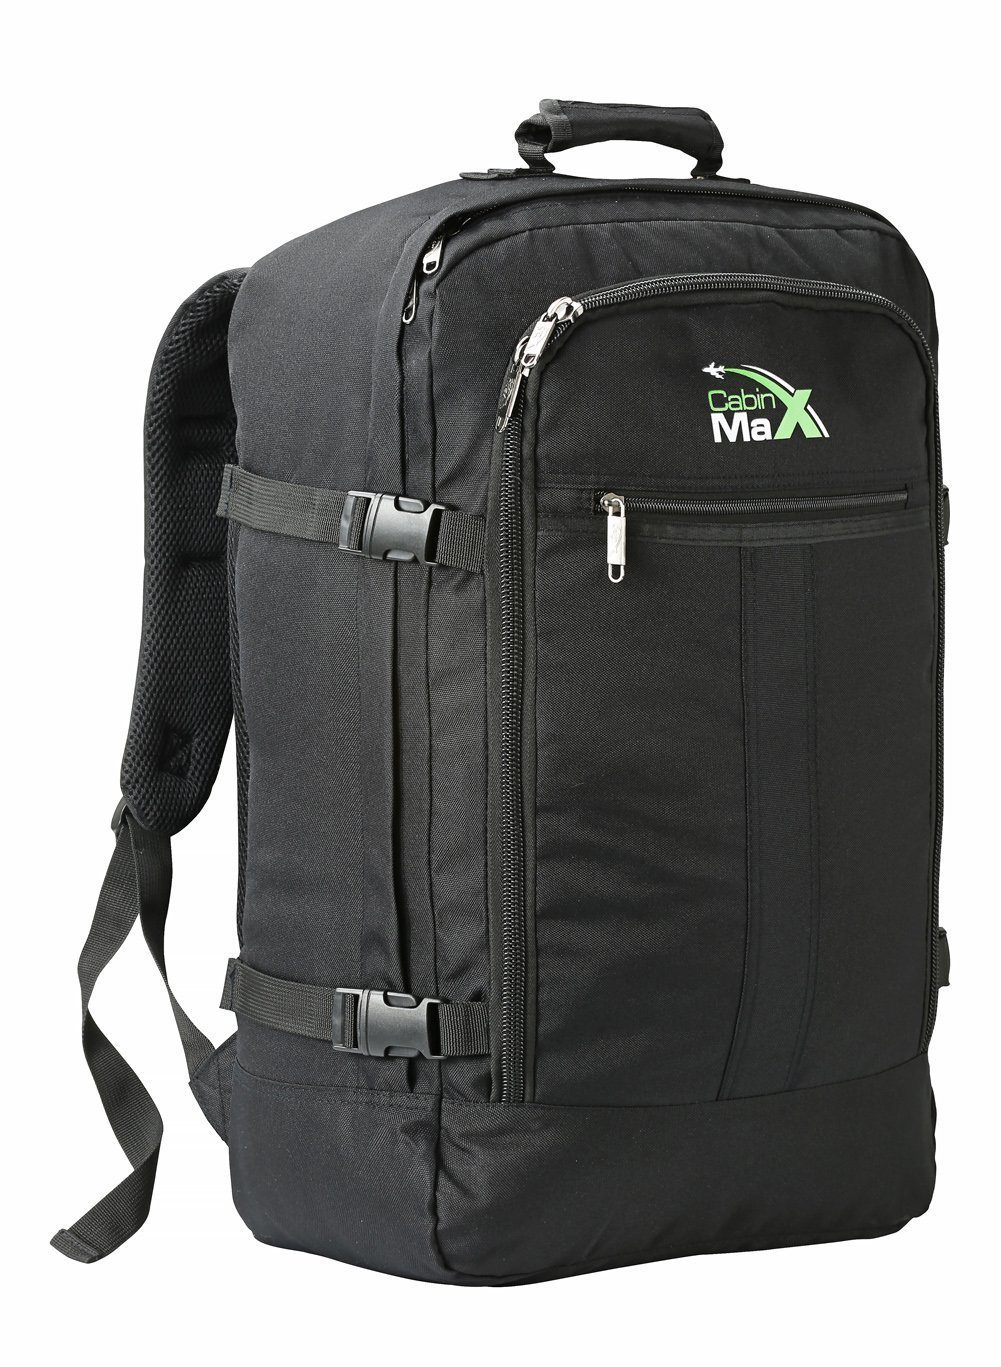 370f7edfc3 Cabin Max Backpack Flight Approved Carry On Bag Massive 44 litre Travel  Hand Luggage